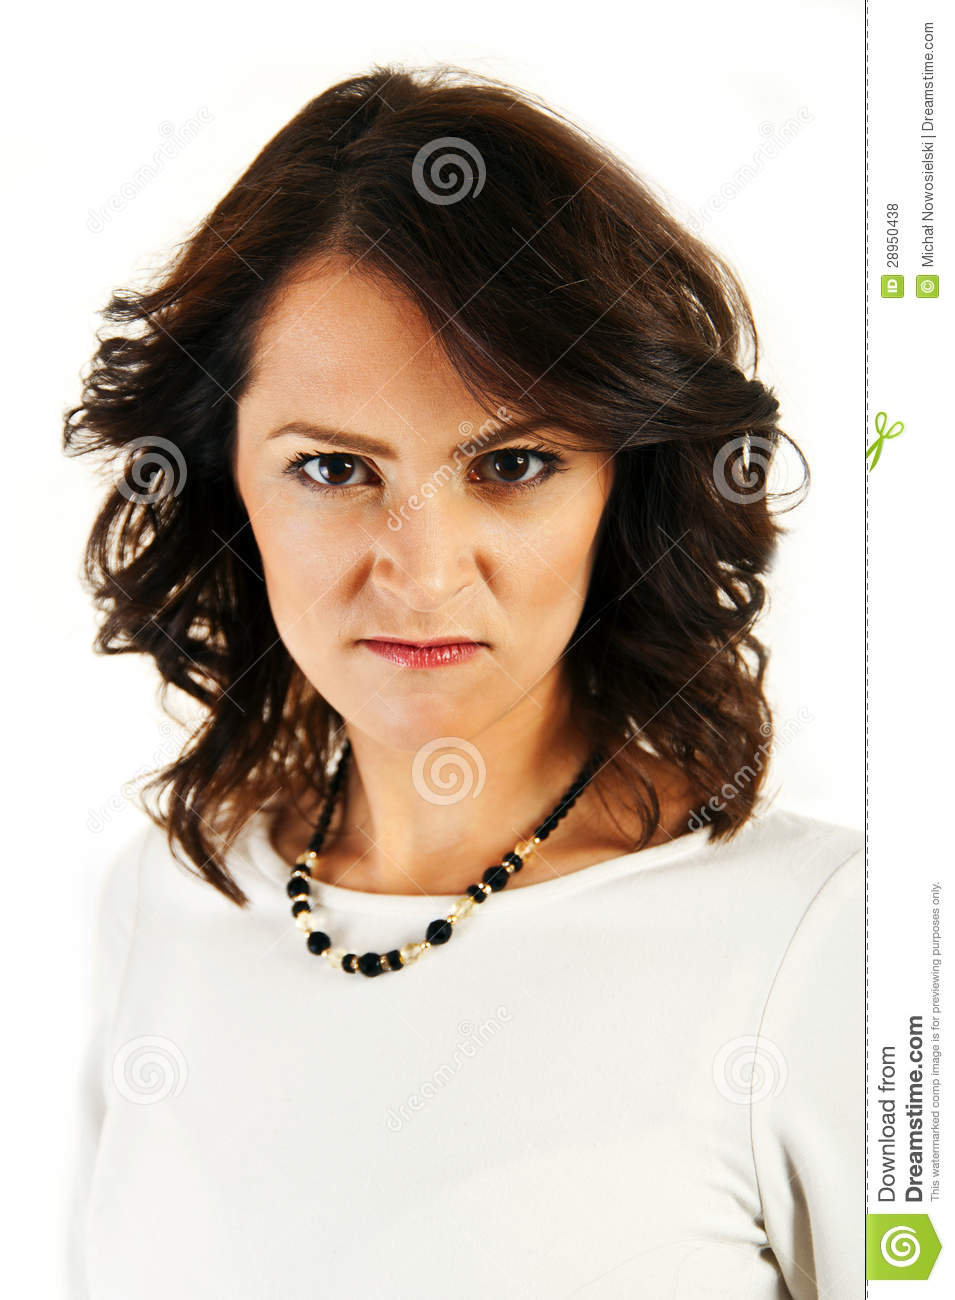 Woman With Angry Face Royalty Free Stock Photos - Image: 28950438